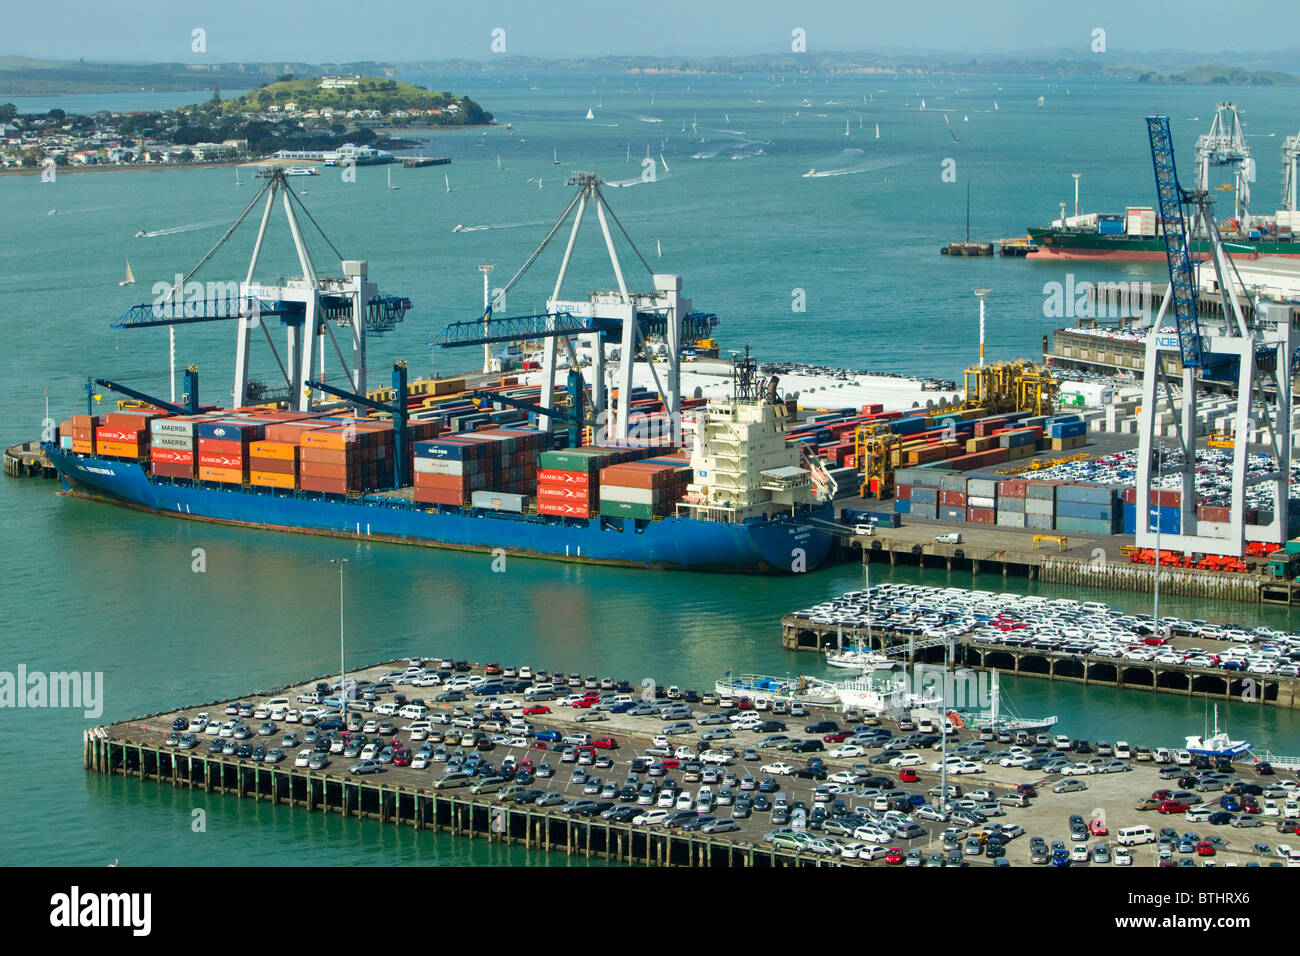 View of Port of Auckland, Auckland, New Zealand - Stock Image